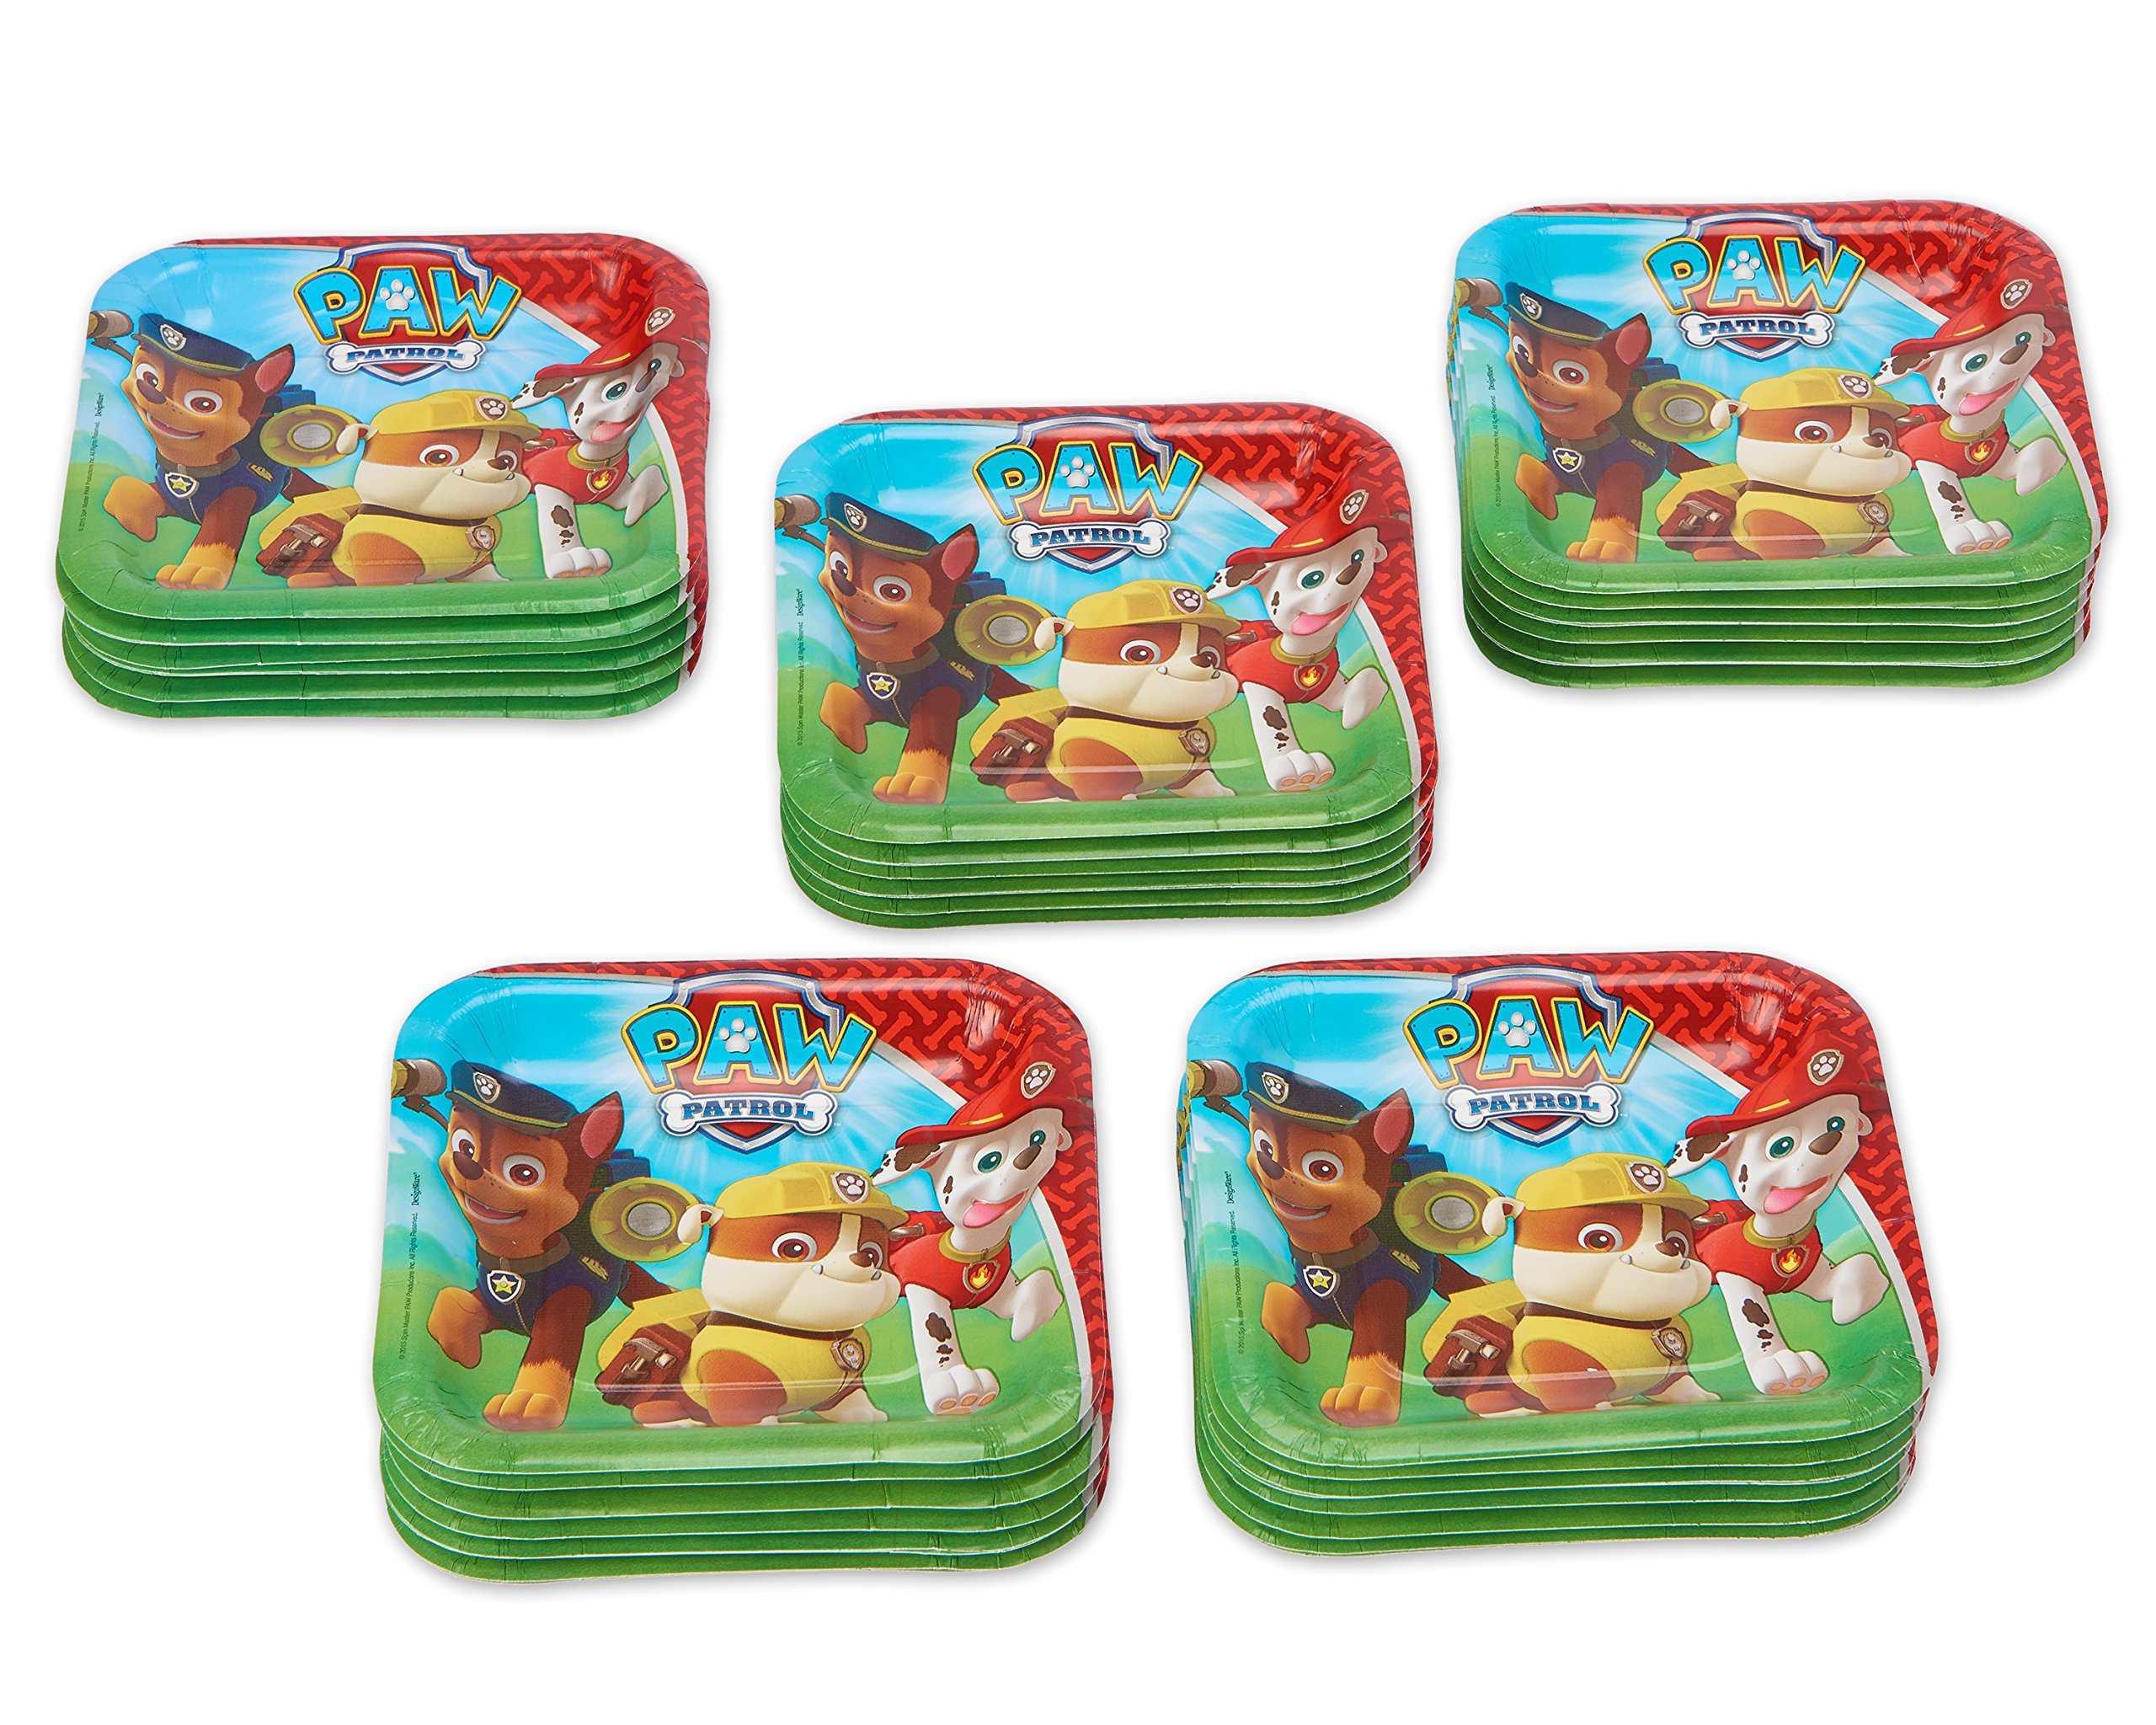 Nickelodeon American Greetings PAW Patrol Square Plate (40 Count), 7''